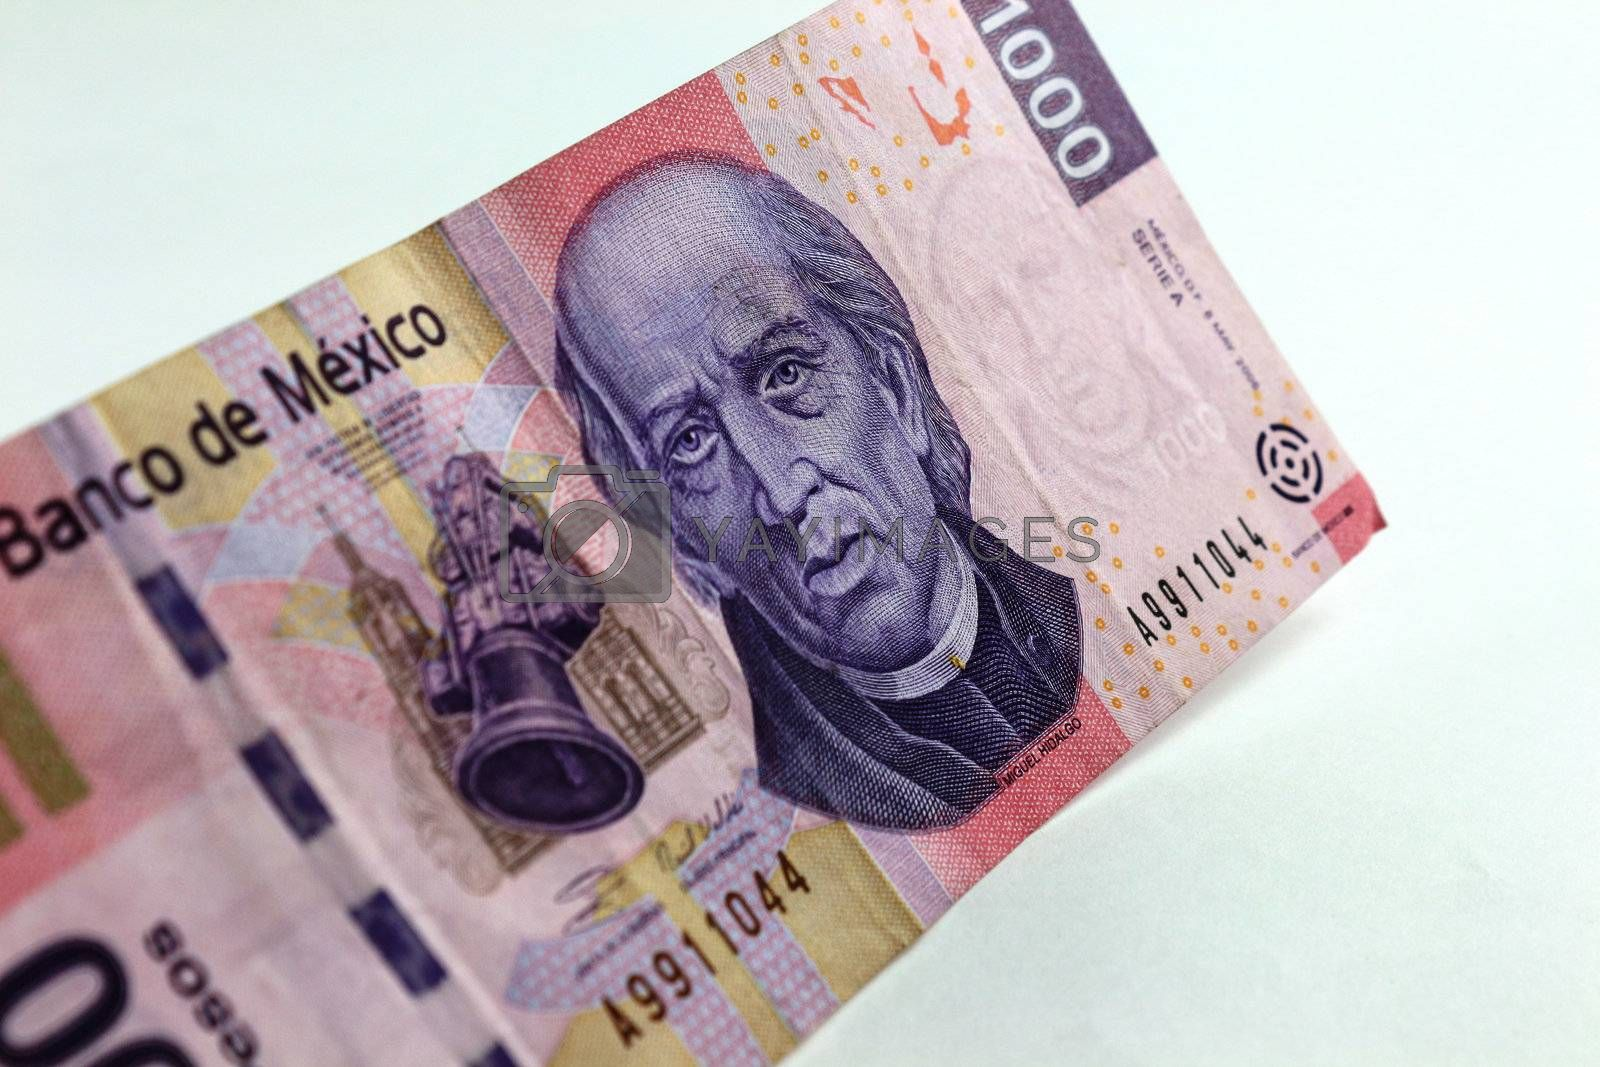 Angle view of a Mexican thousand pesos bill